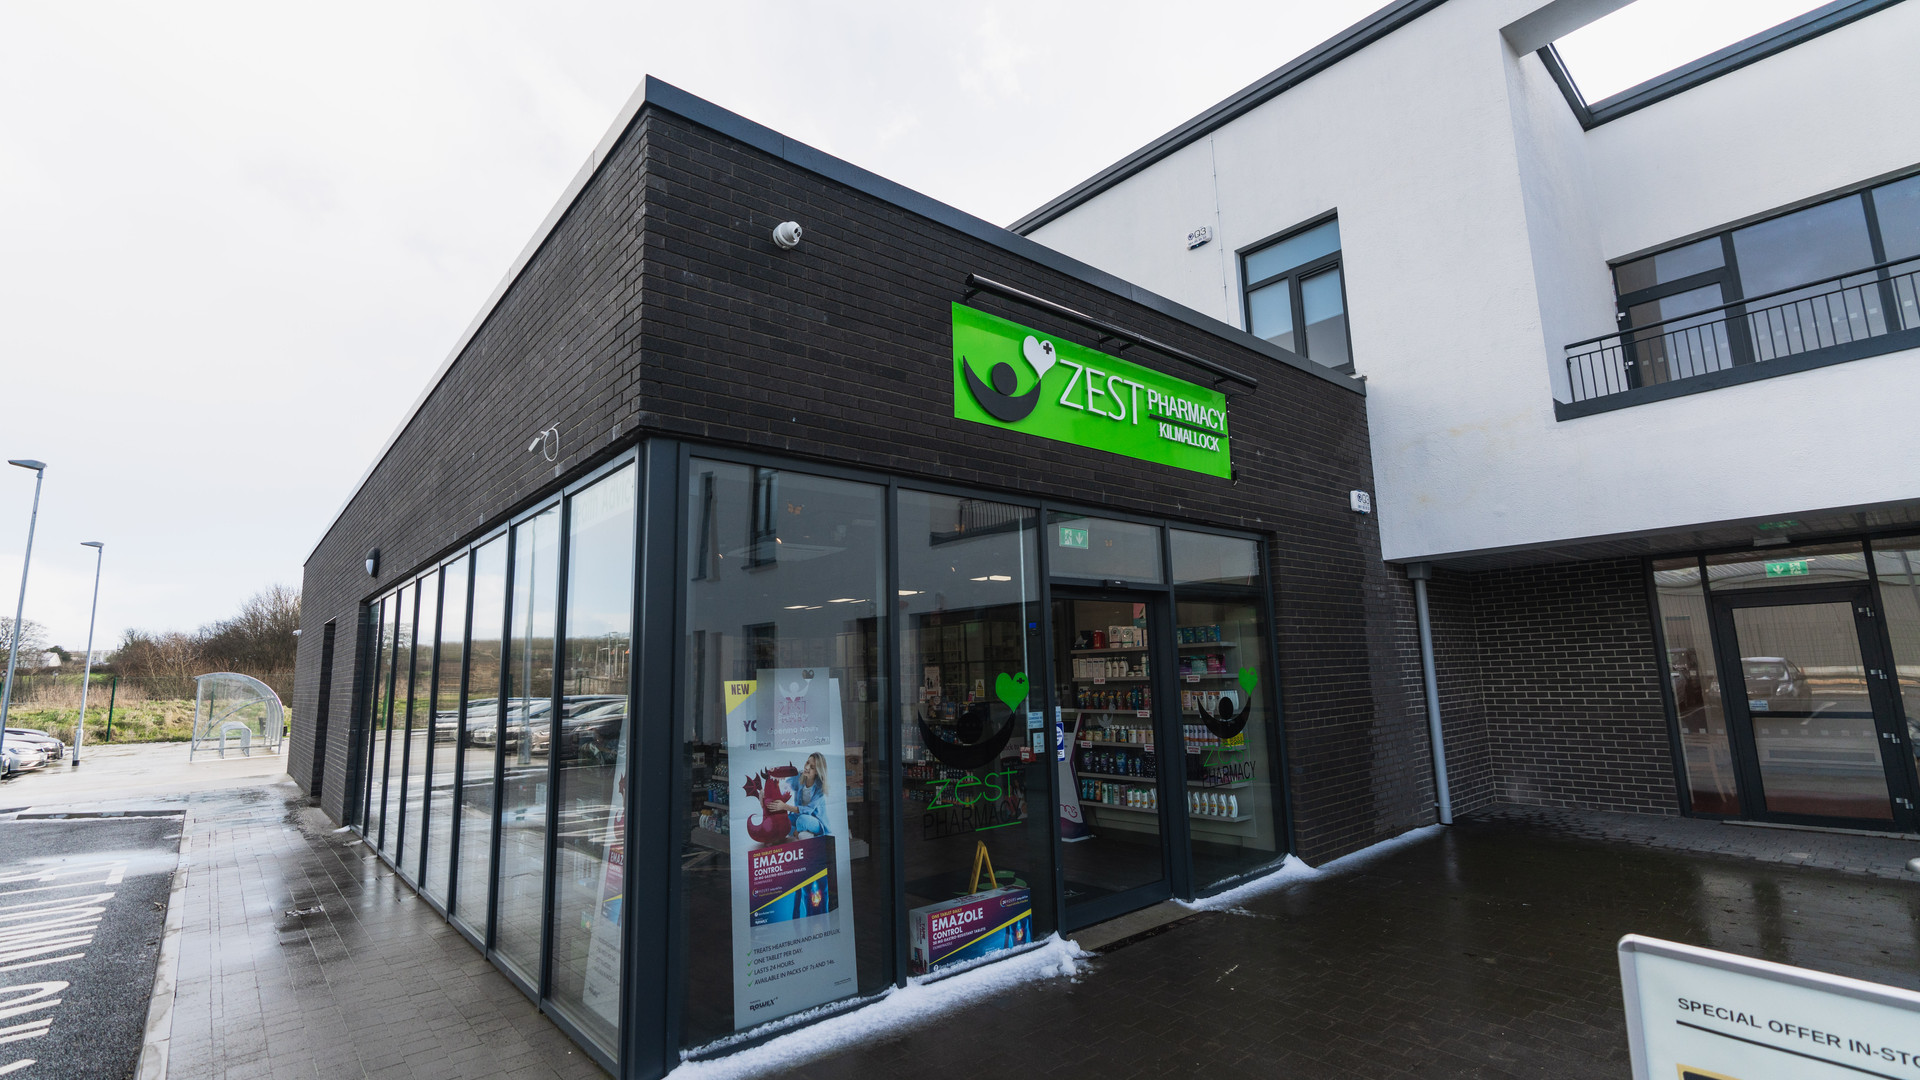 Zest Pharmacy Photos-4490.jpg